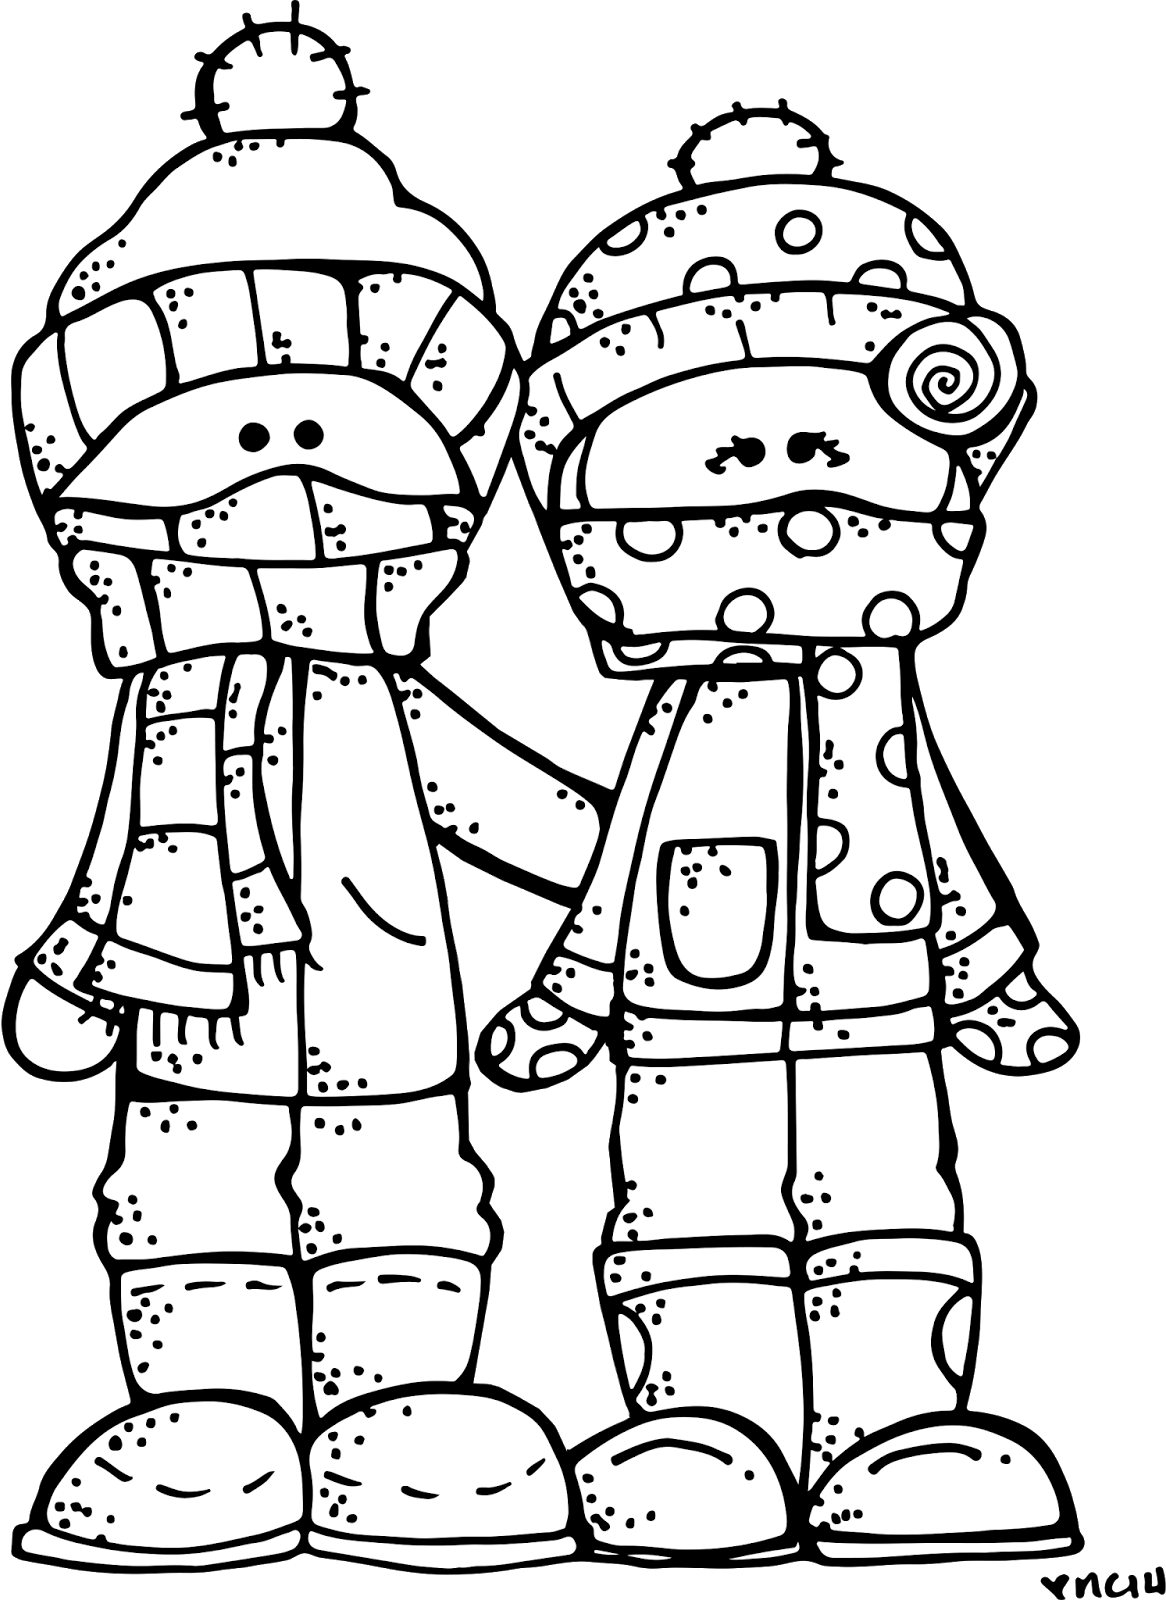 Winter clipart black and white. Melonheadz lds illustrating freebie